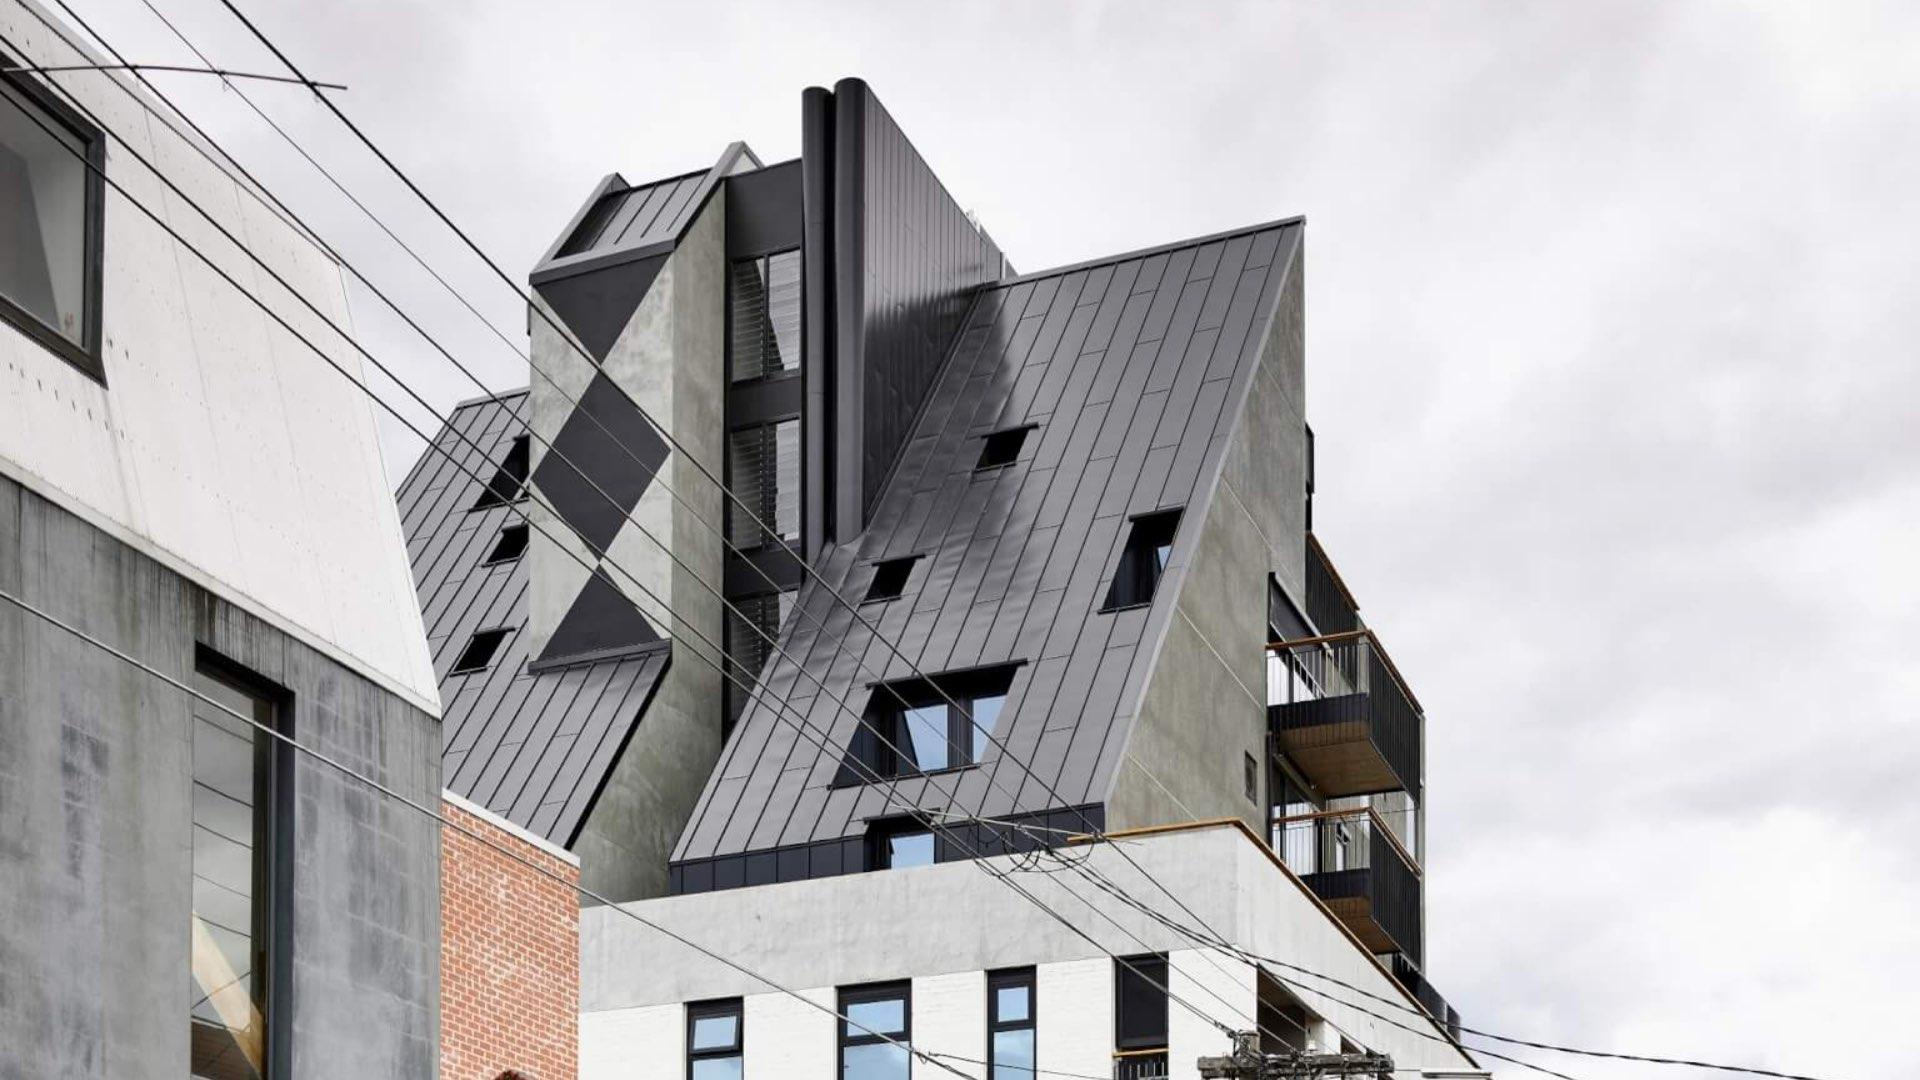 modern black slanted rooftop with multiple windows